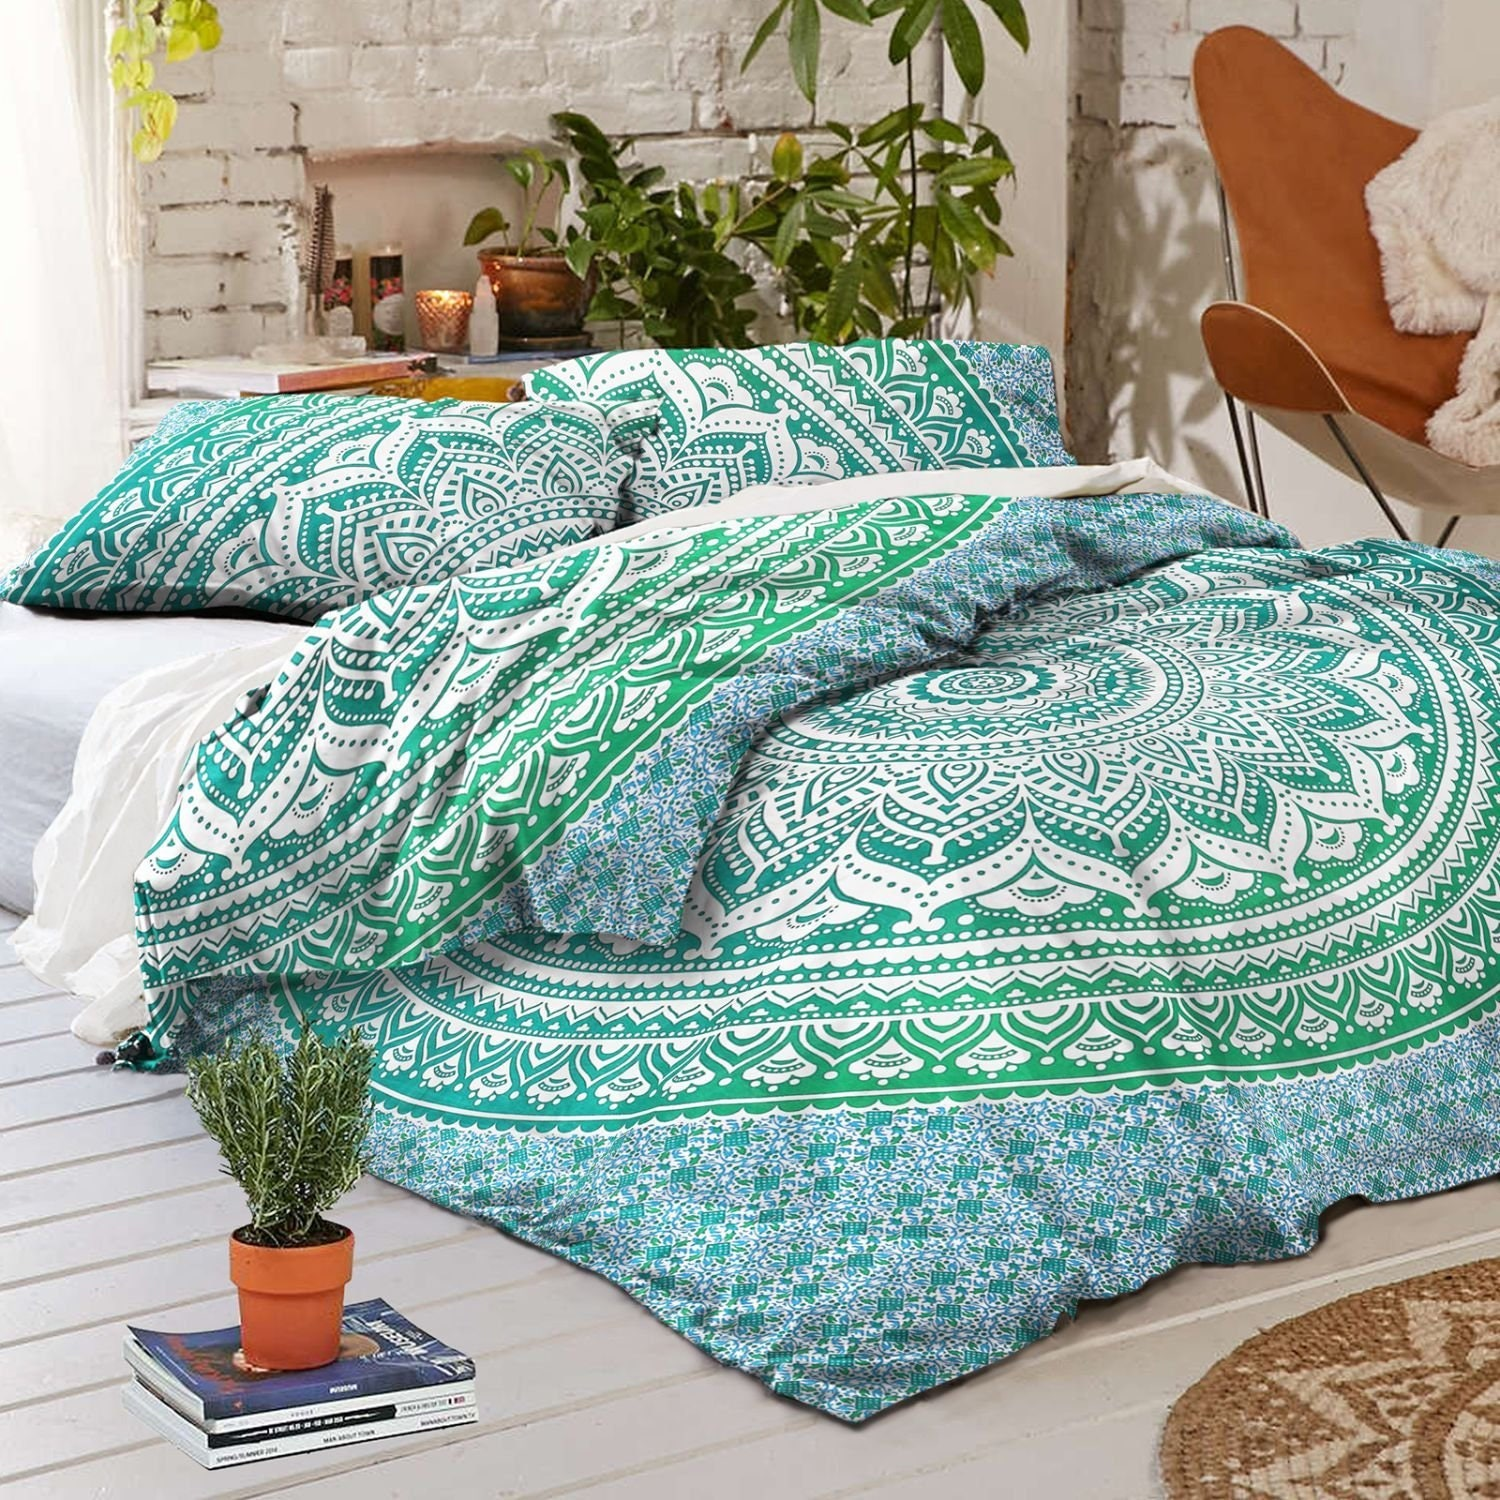 Bedding Hippie Mandala Quilt Cover Blanket Throw Indian Twin Duvet Cover Bedding Set Home Furniture Diy Pneumec In